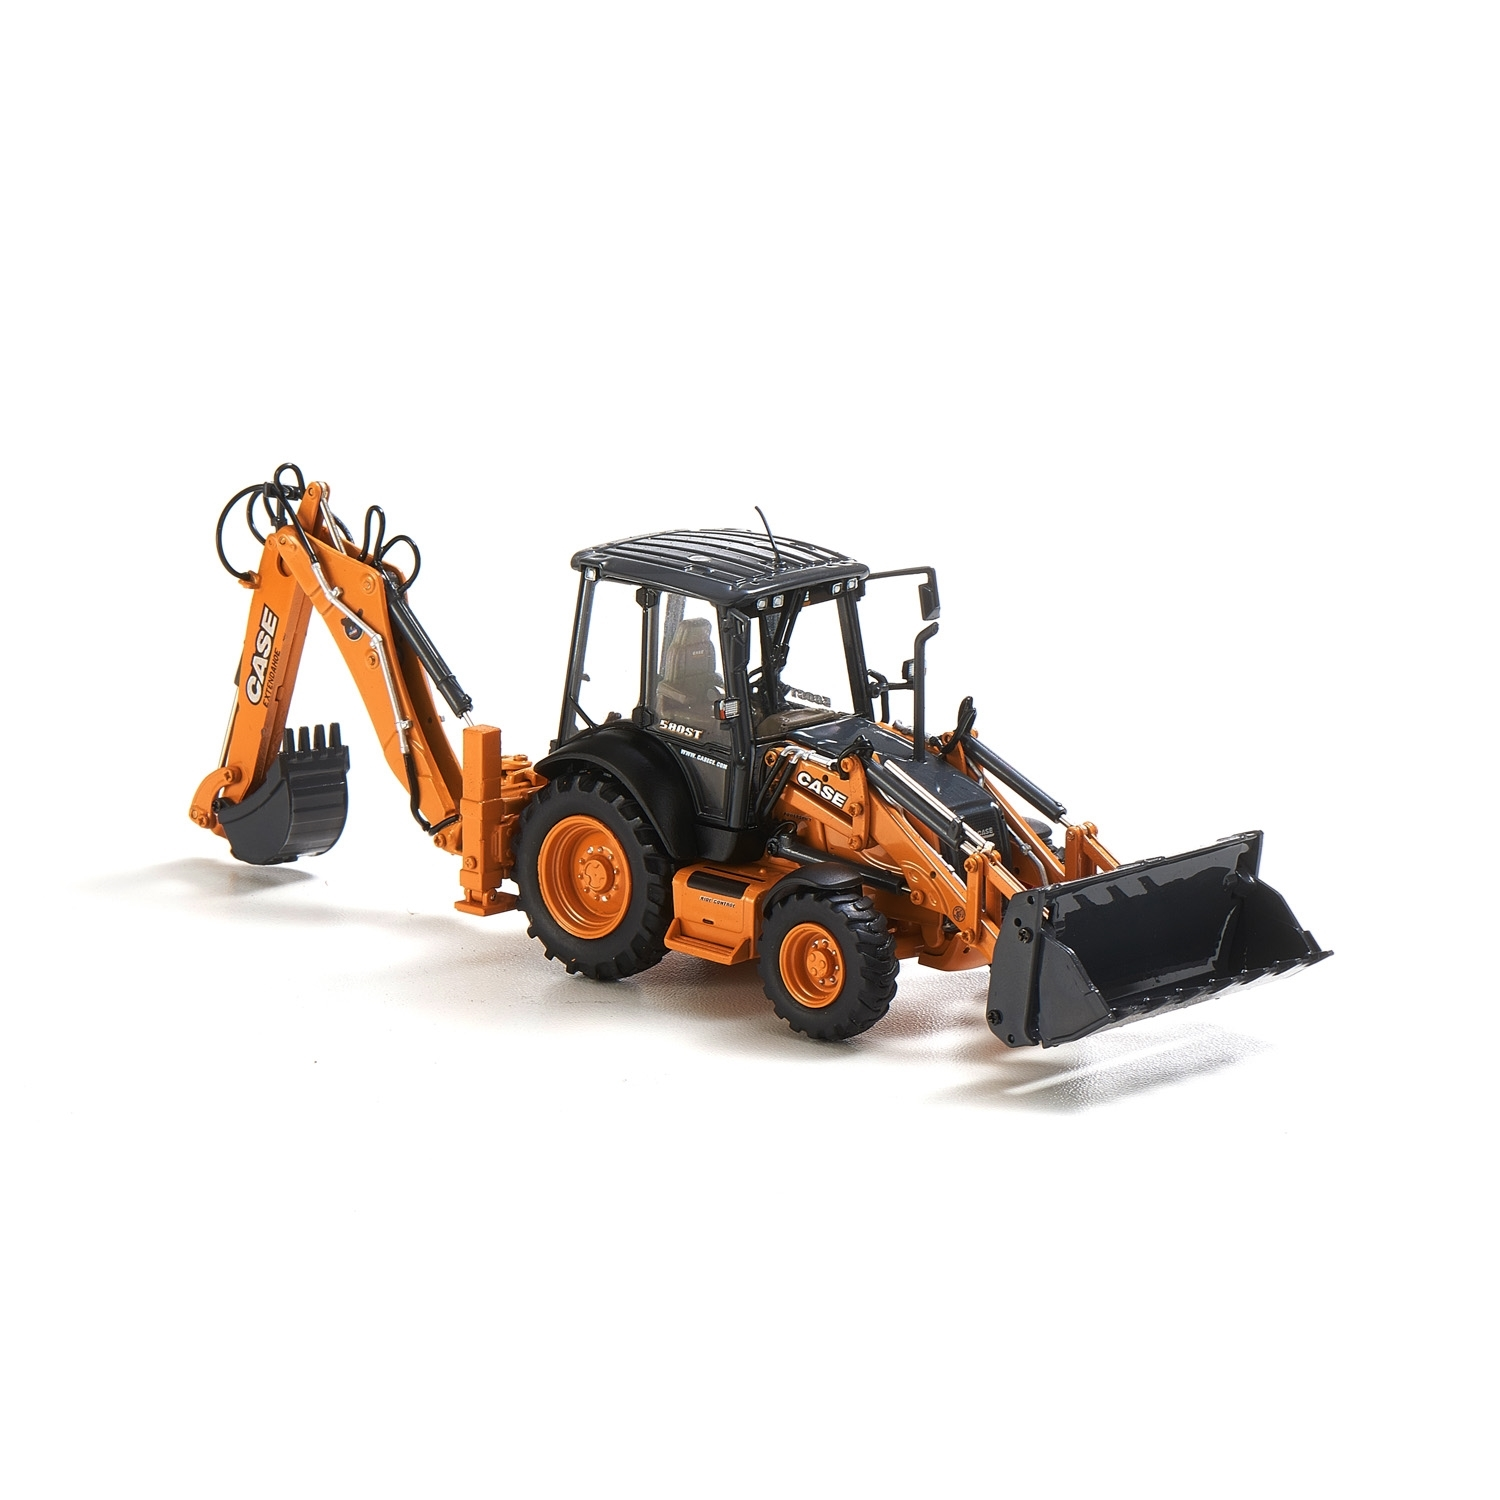 Backhoe Loader St